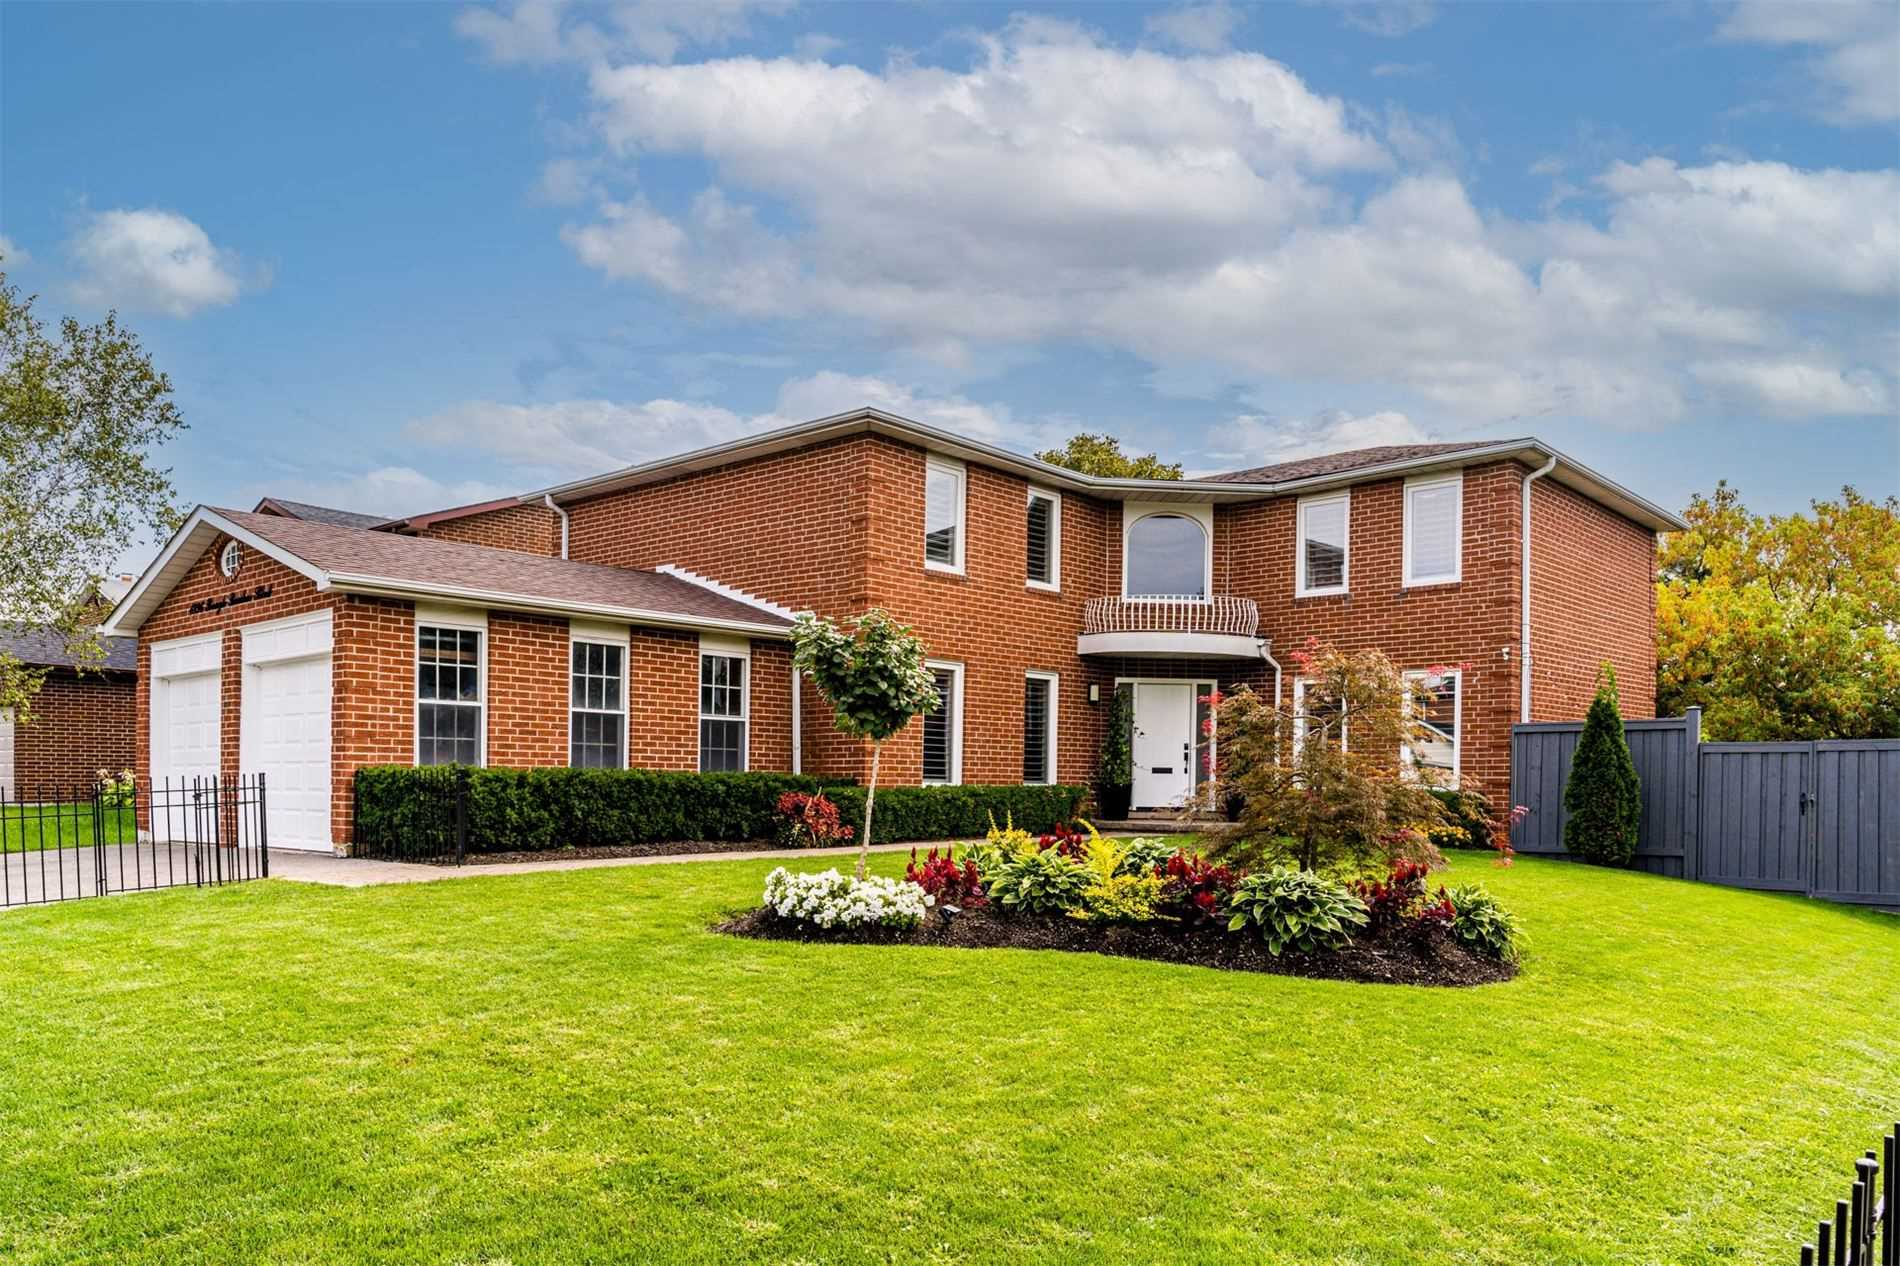 1896 Bough Beeches Blvd, Mississauga